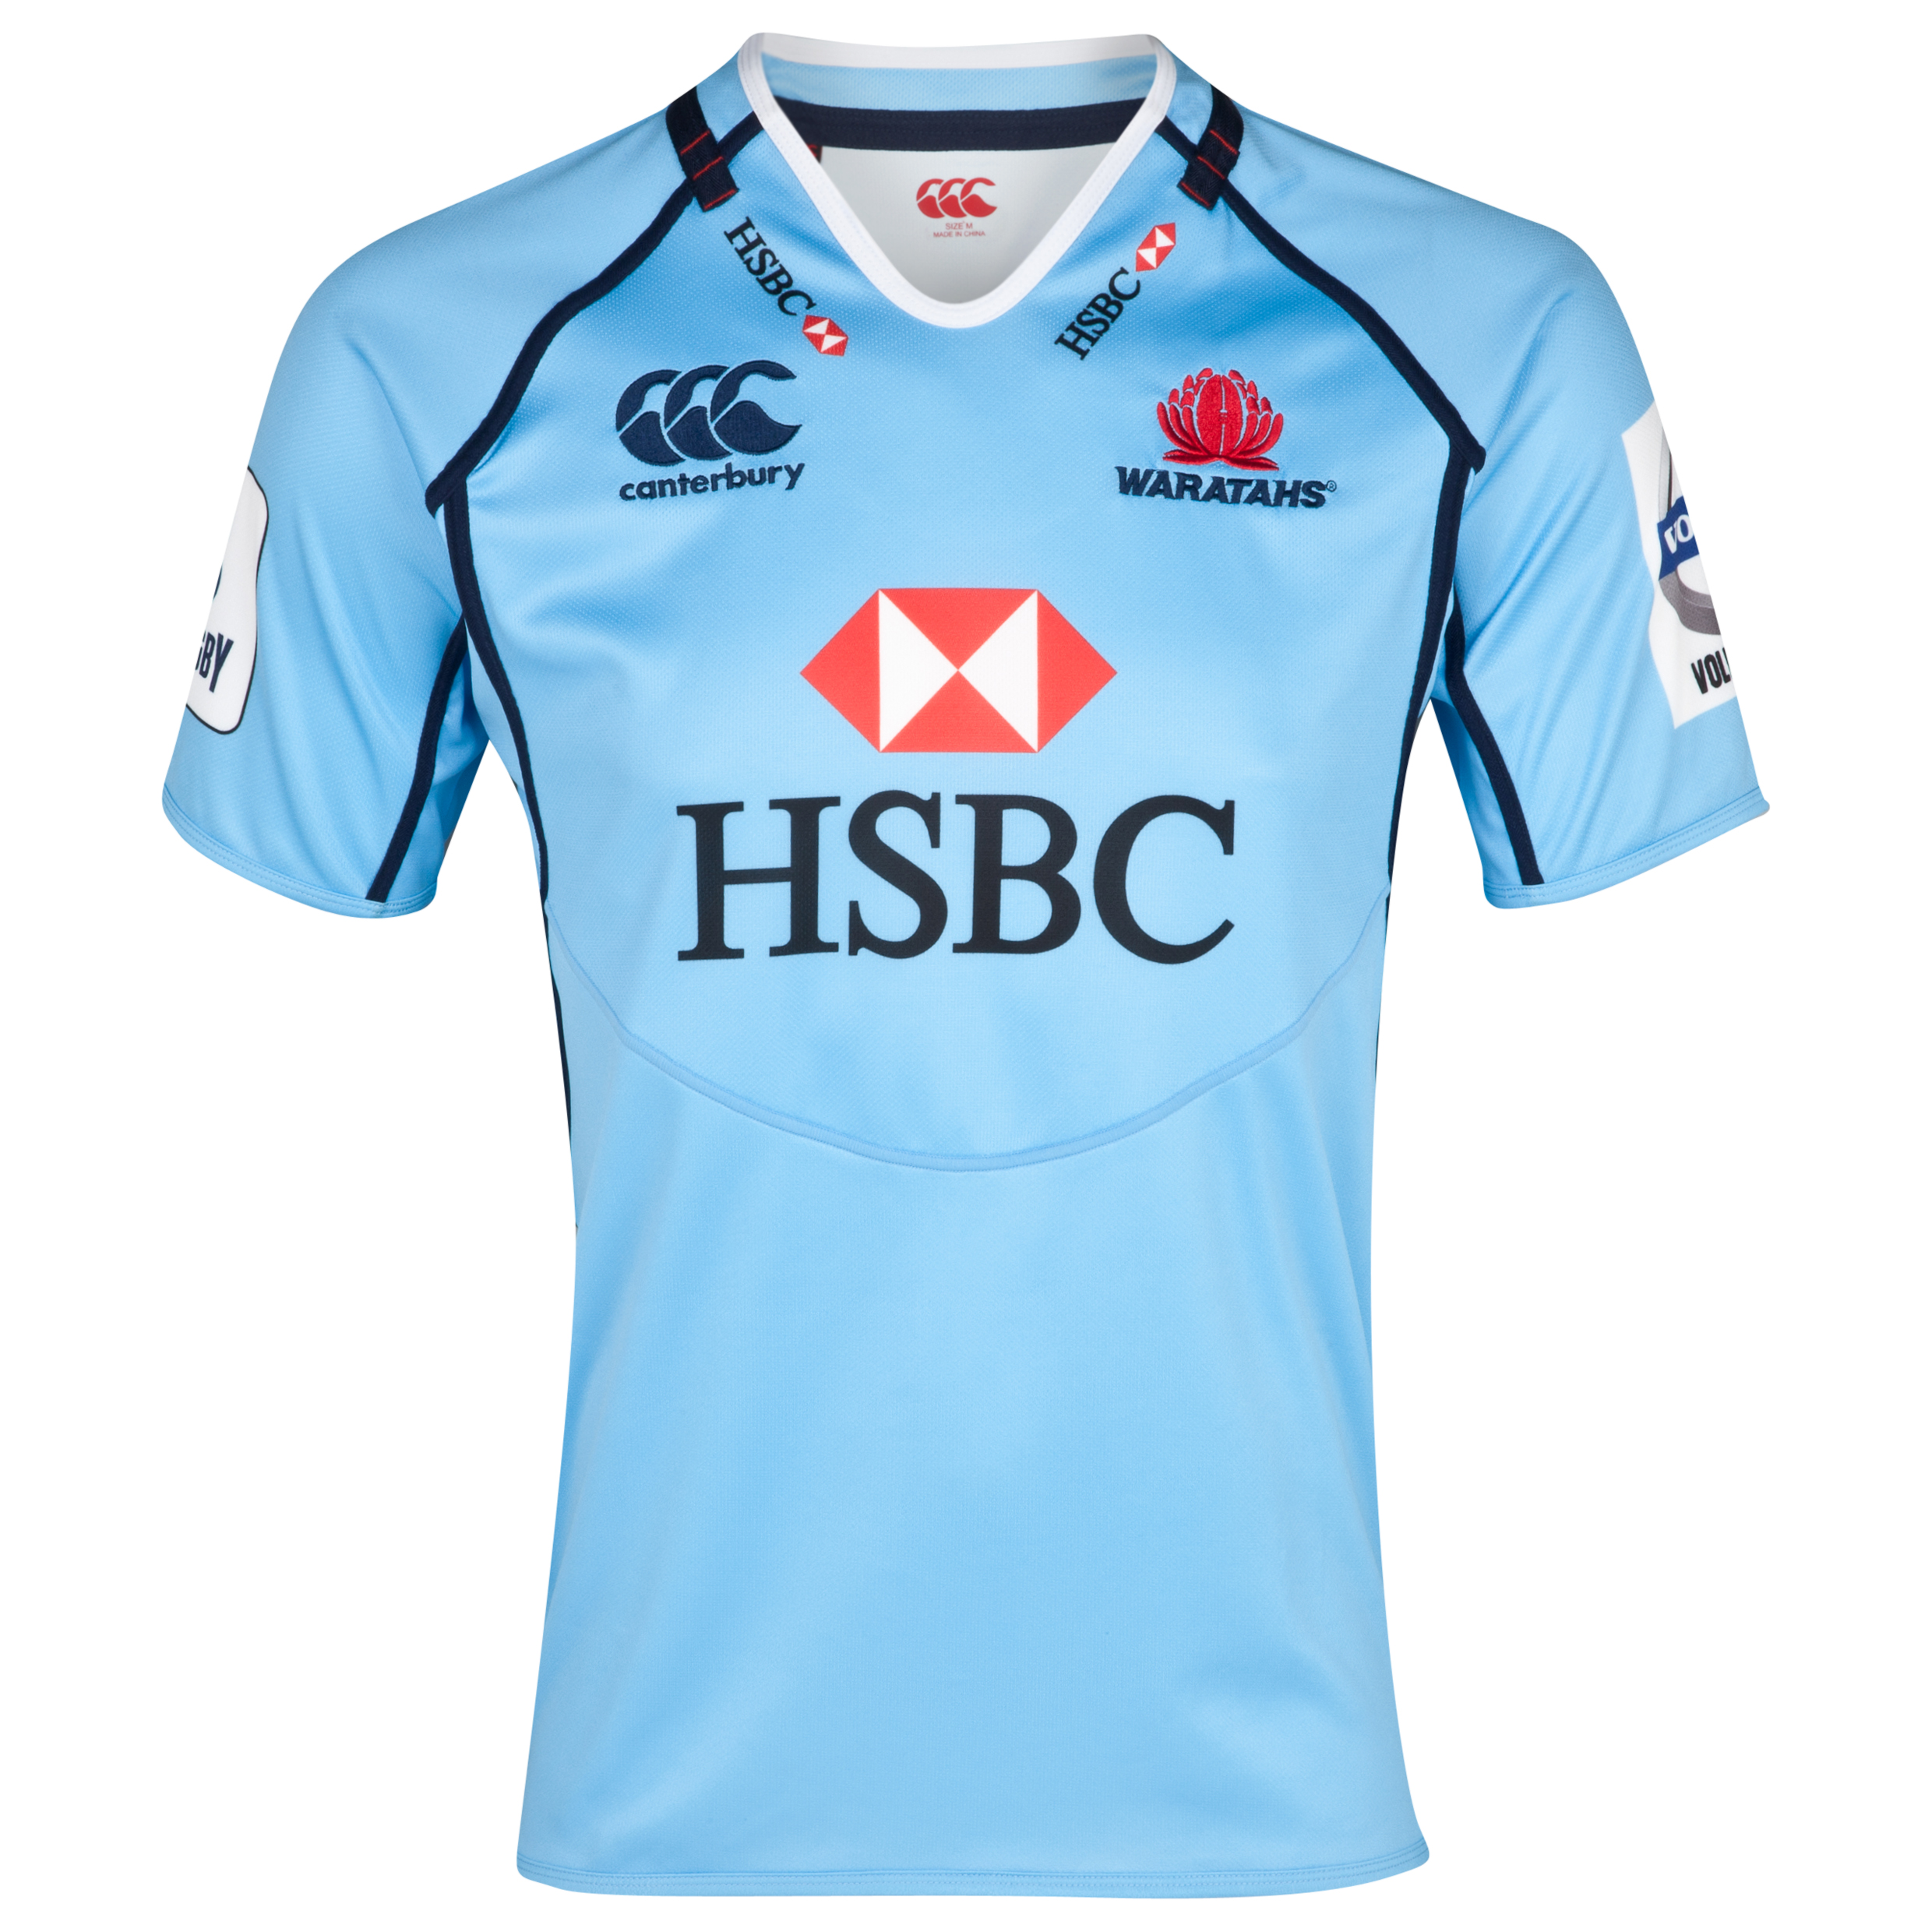 Waratahs Super 15 Home Pro Shirt 2013/15 - Waratah Blue